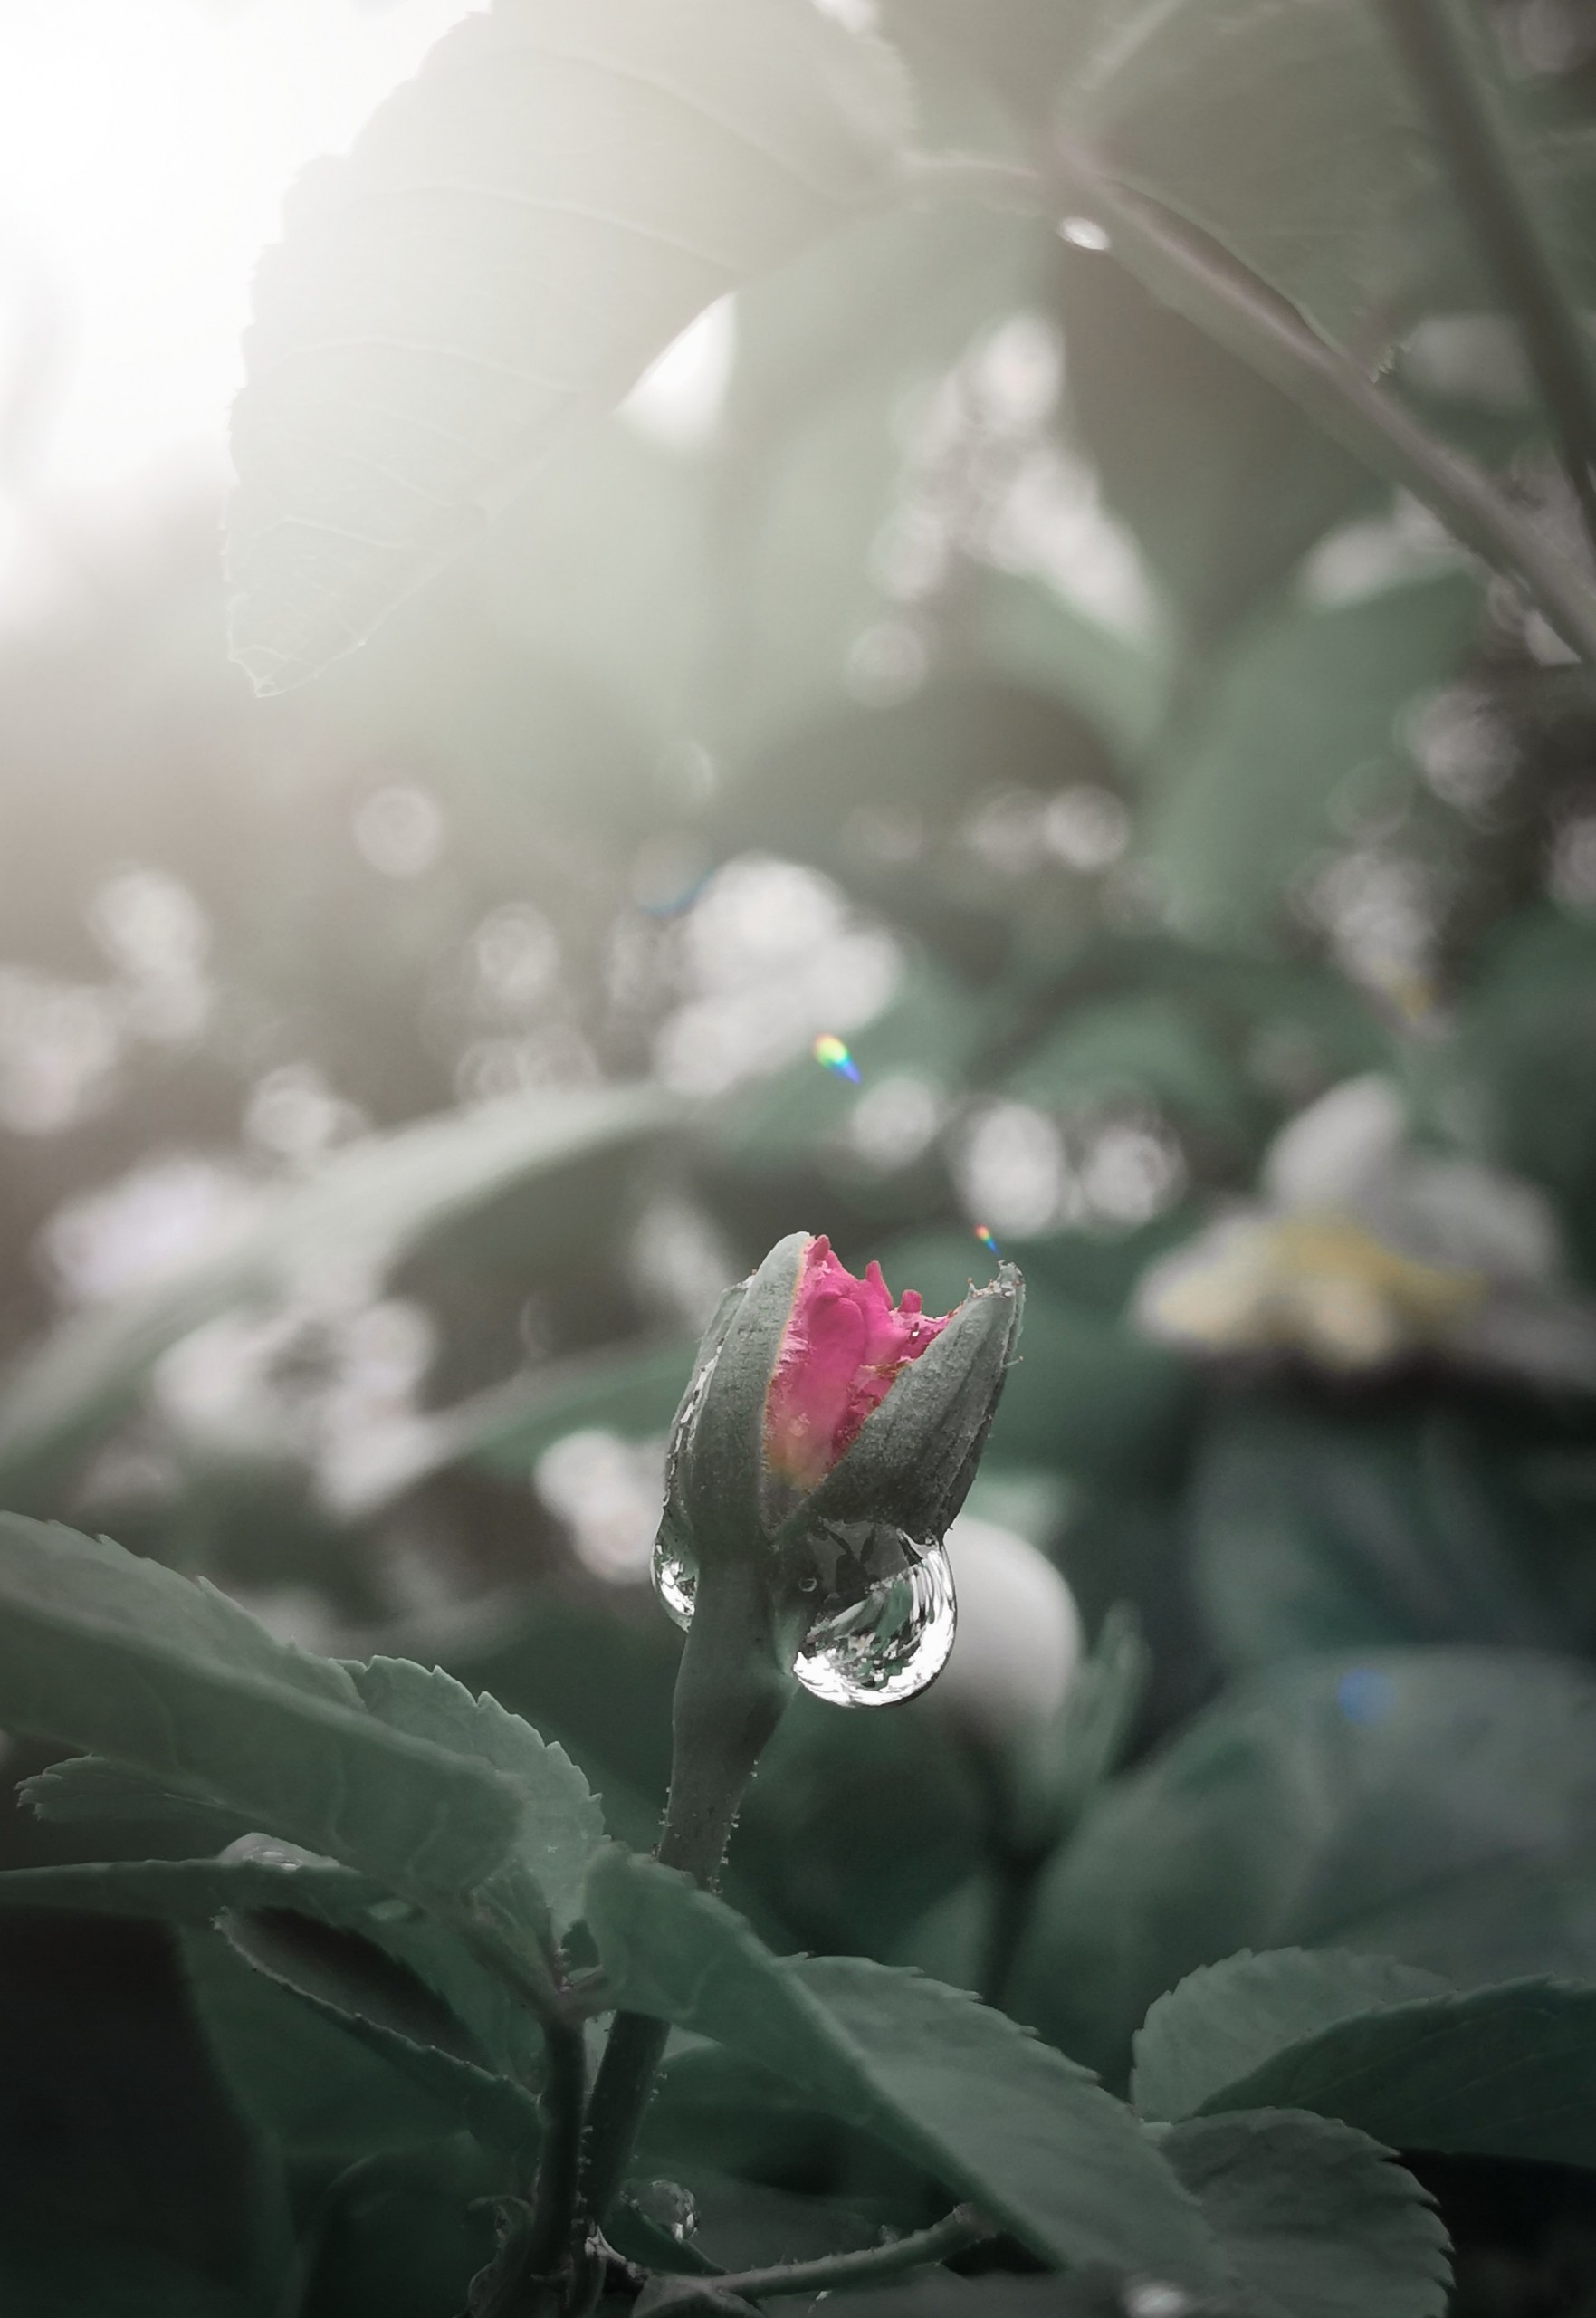 free photo of a flower